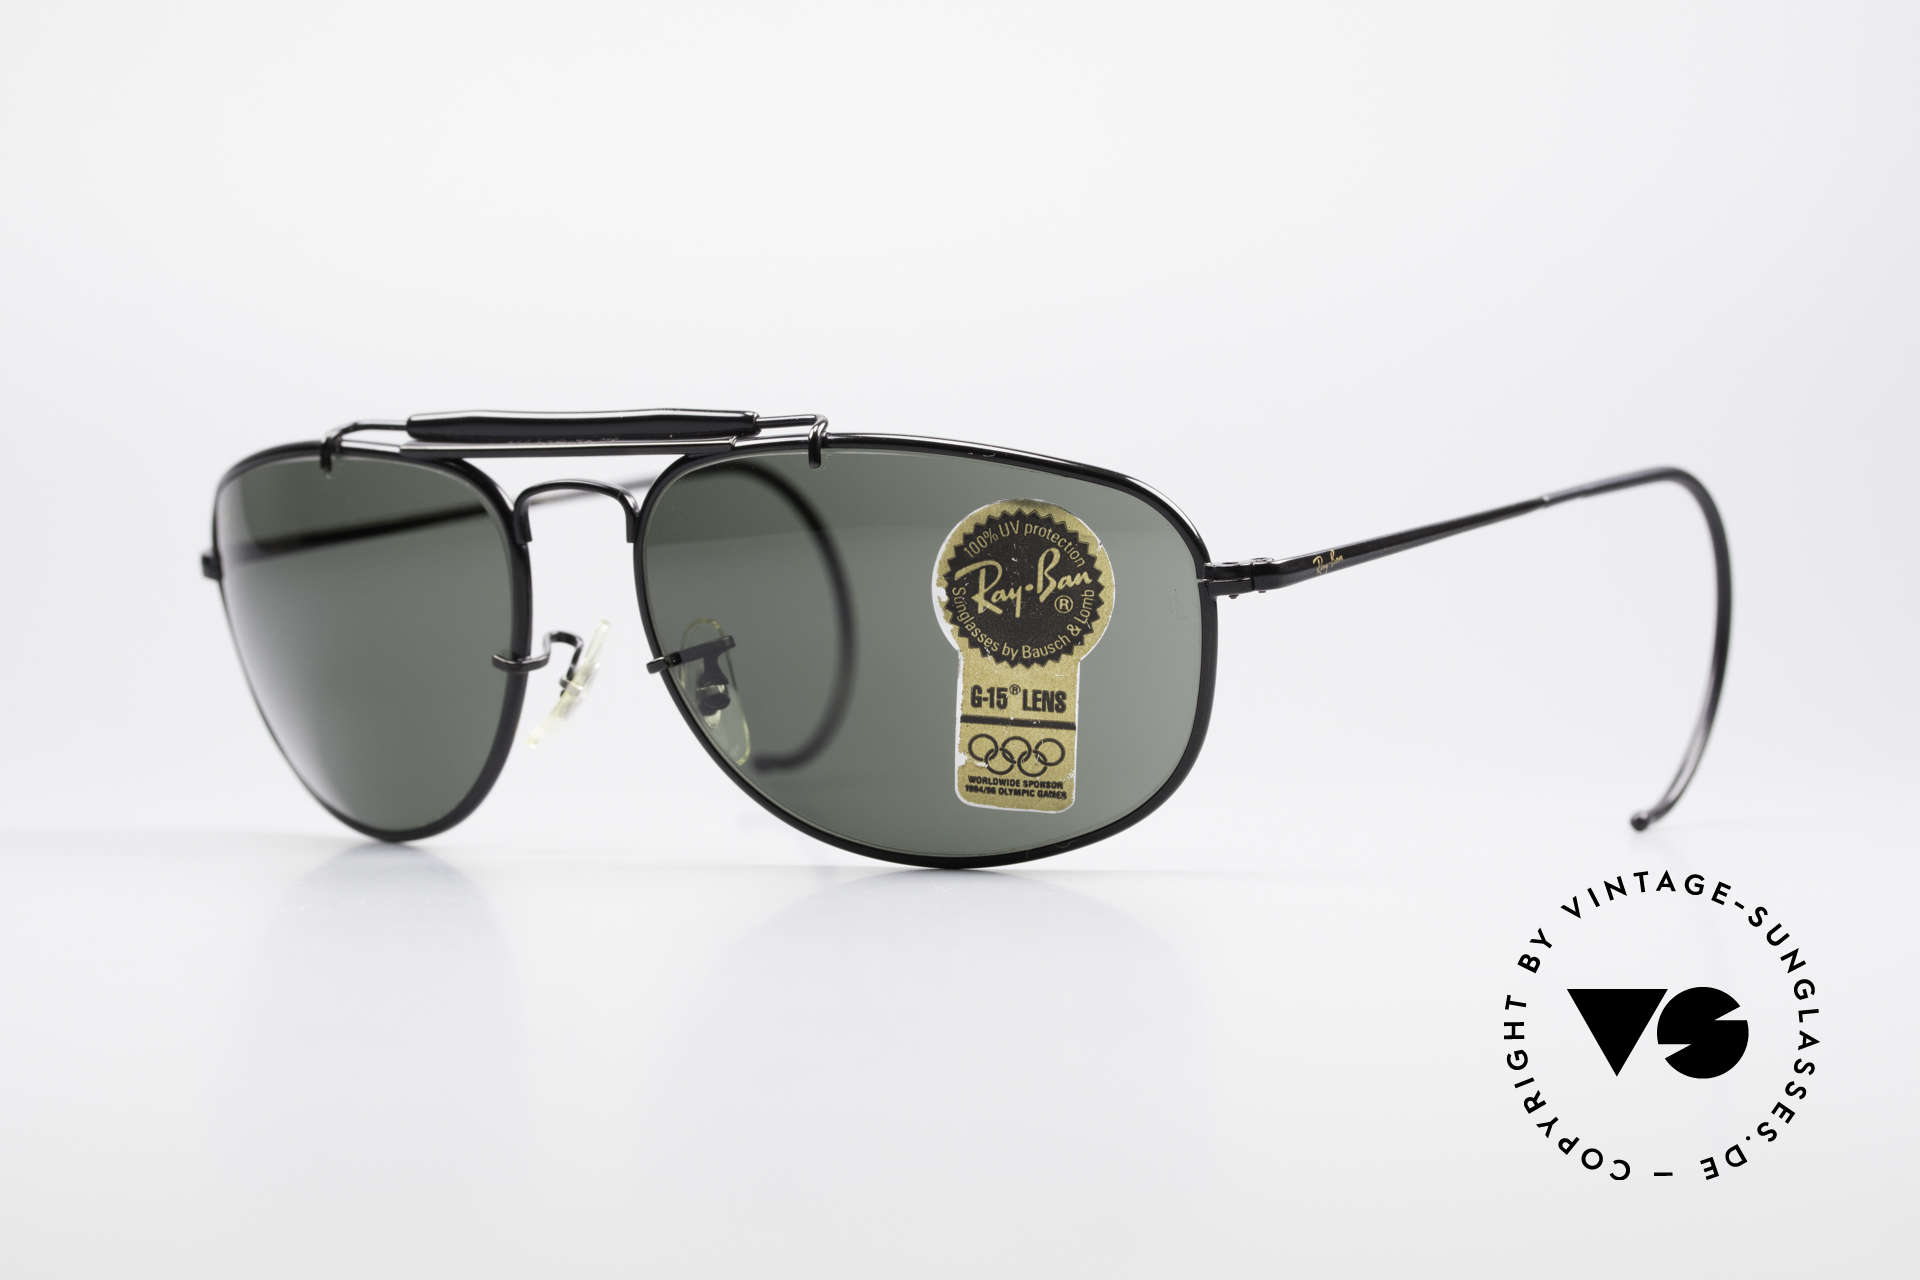 Ray Ban Sport Metal 1992 Olympic Series B&L USA, rare vintage RAY-BAN sunglasses OLYMPIC GAMES 1992, Made for Men